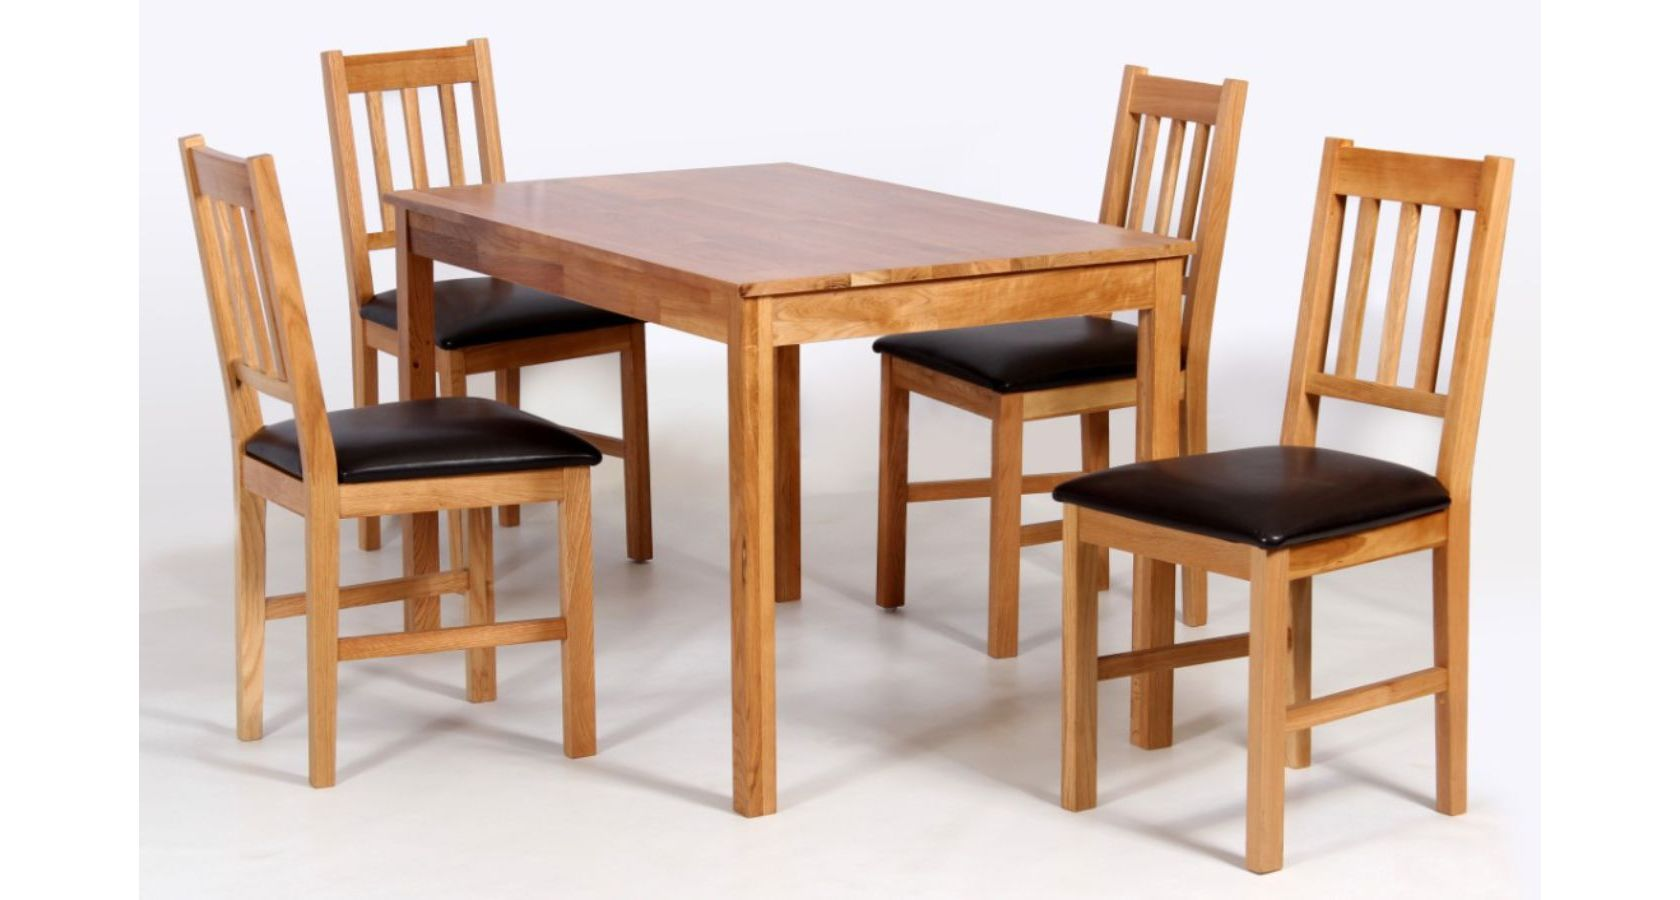 Hyde Dining Table in Solid Oak finish with 4 Solid Oak Chairs